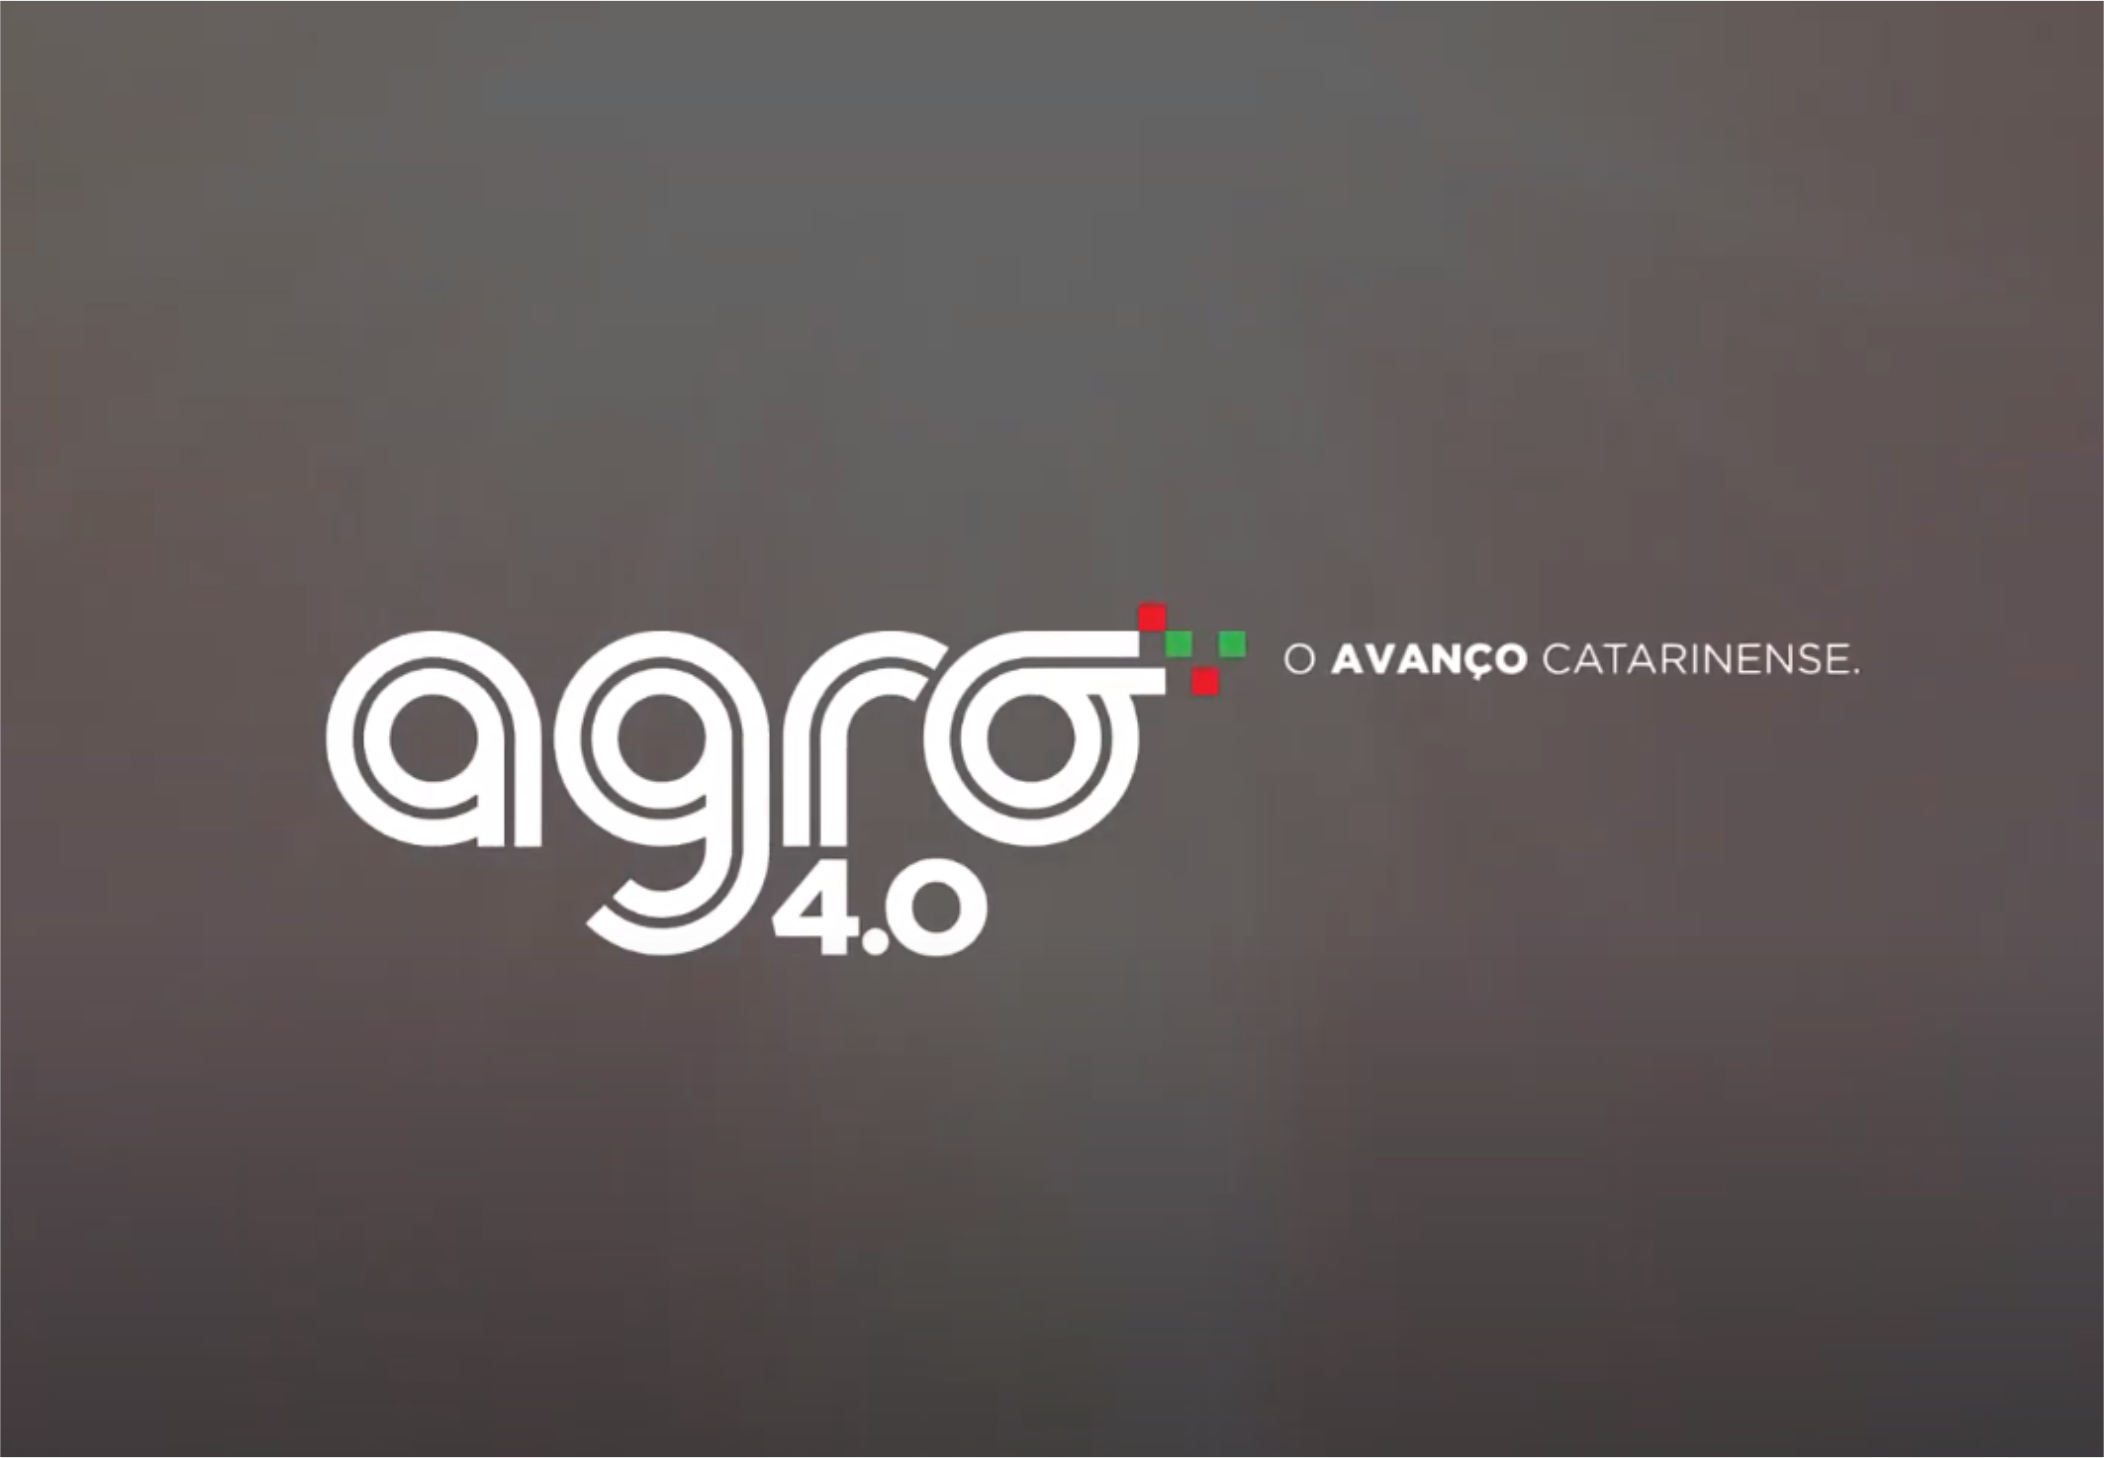 Capa Corti Avioeste - report from NSC TV Agro 4.0 project